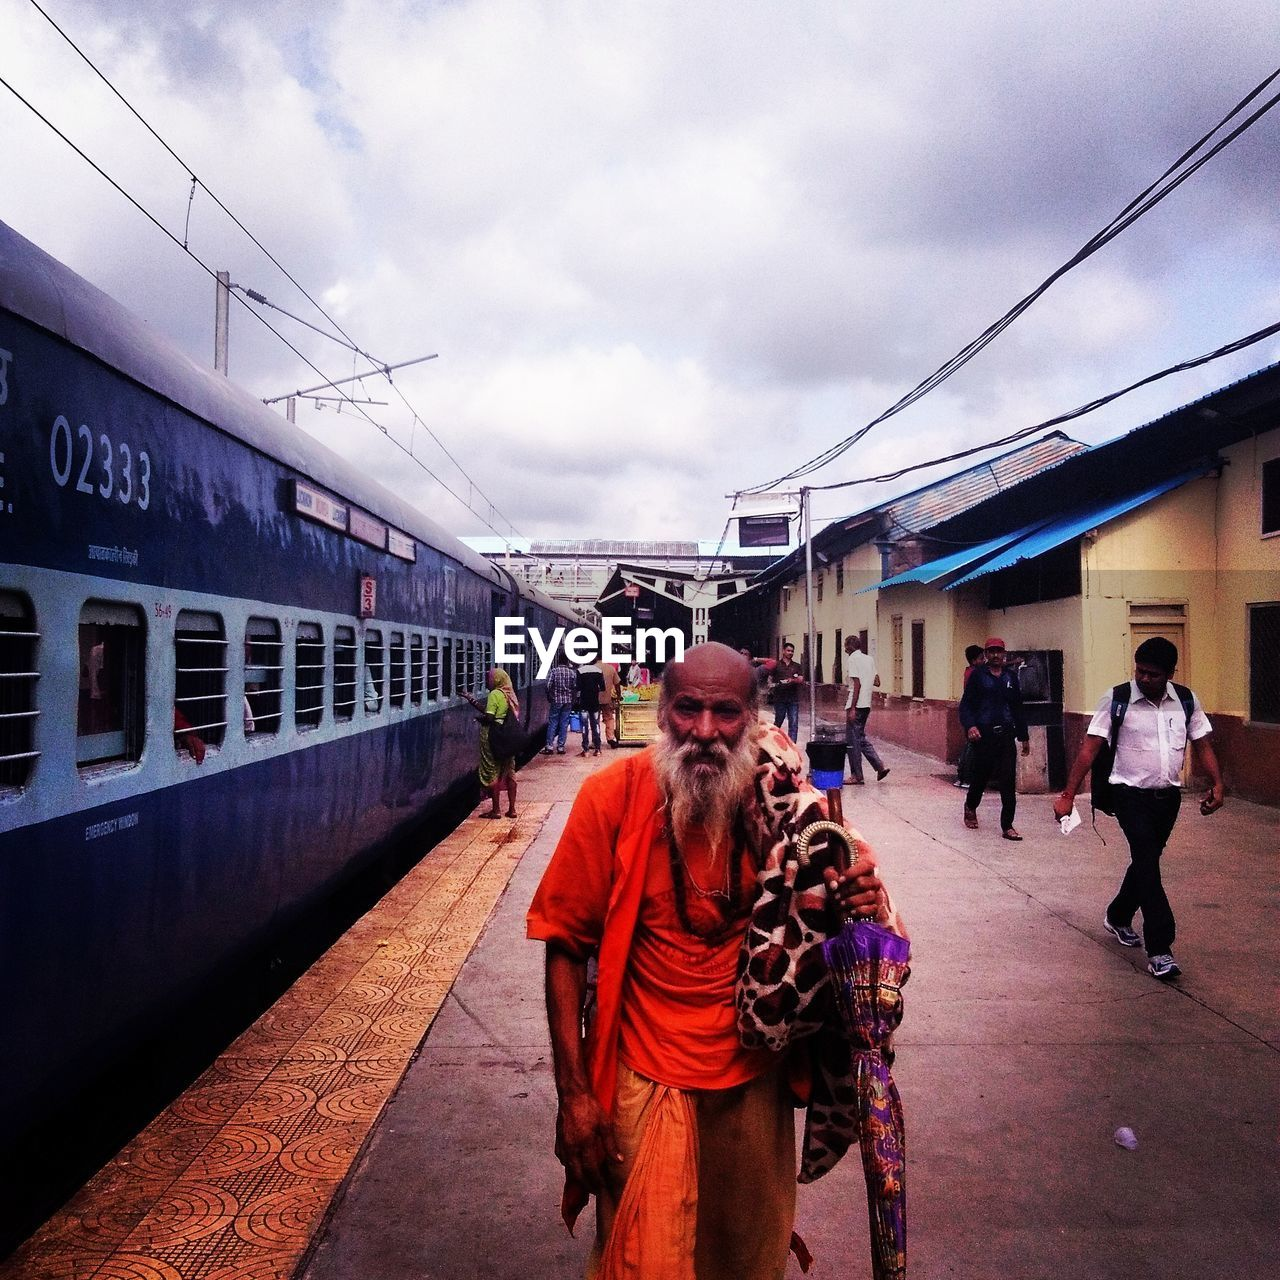 real people, transportation, mode of transport, sky, men, architecture, walking, built structure, cloud - sky, train - vehicle, outdoors, lifestyles, rail transportation, public transportation, day, building exterior, women, large group of people, railroad station platform, full length, adult, people